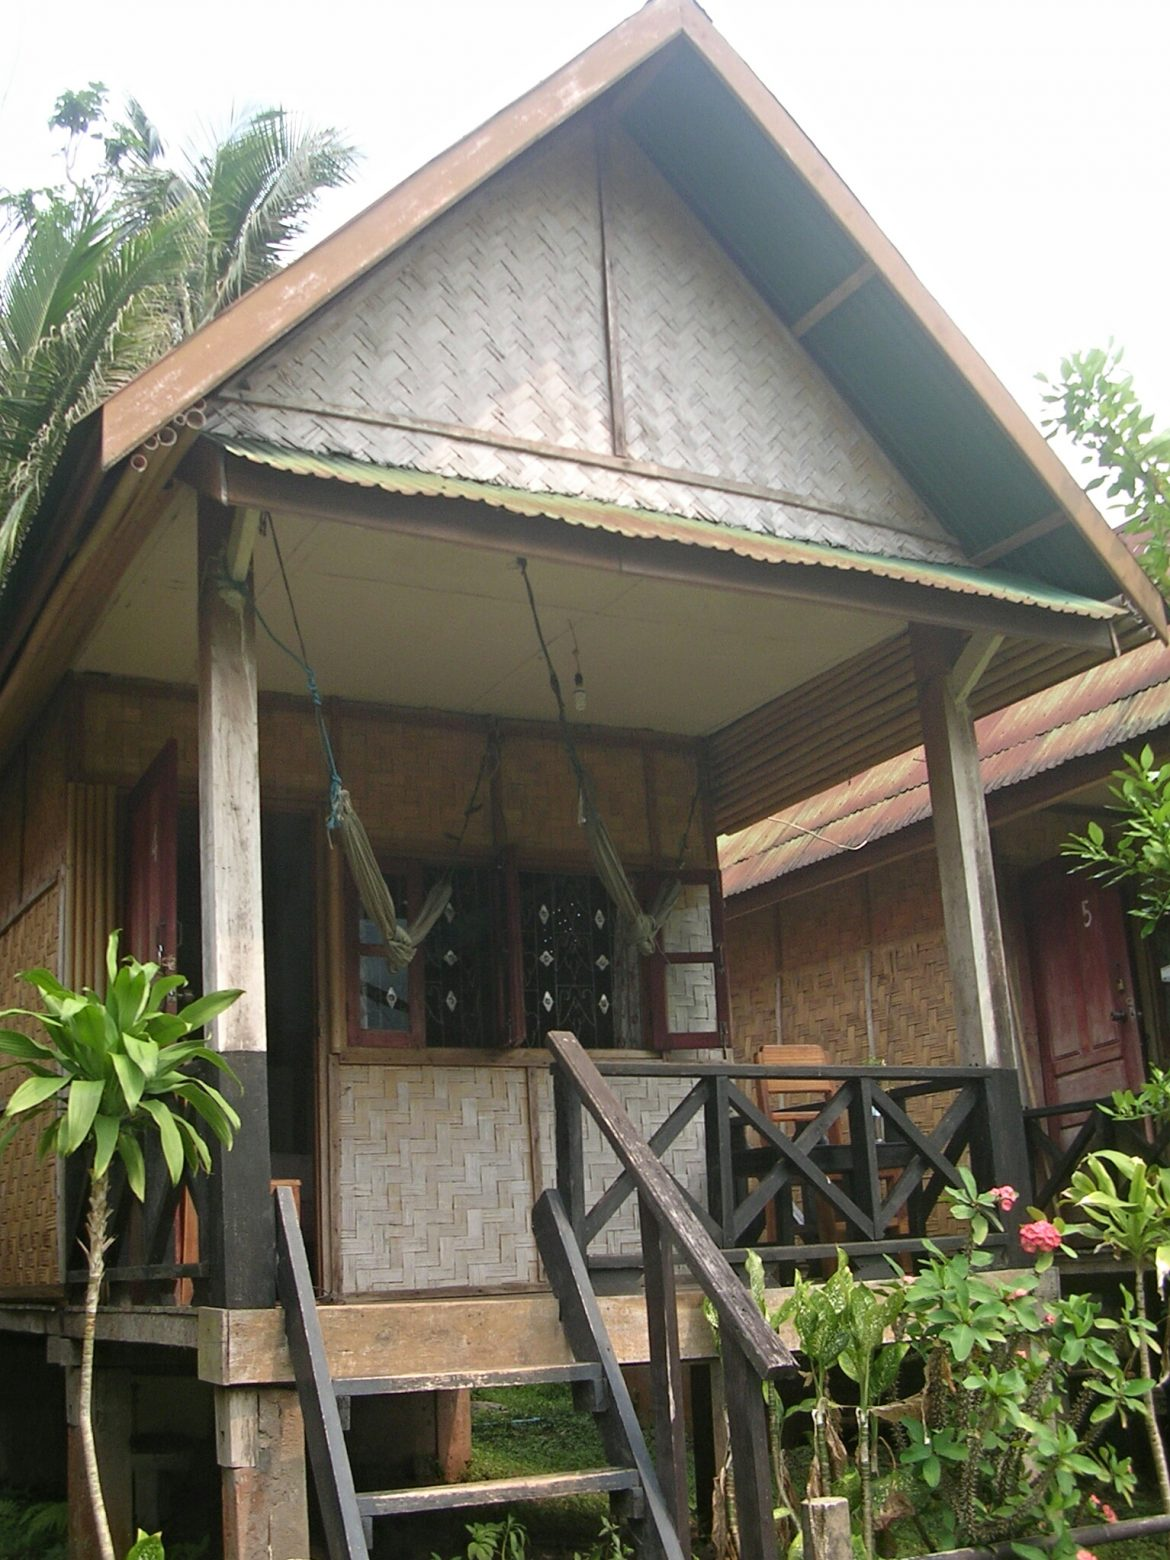 Mein Bungalow bei Nicksa Place in Muang Noi Neua in Laos